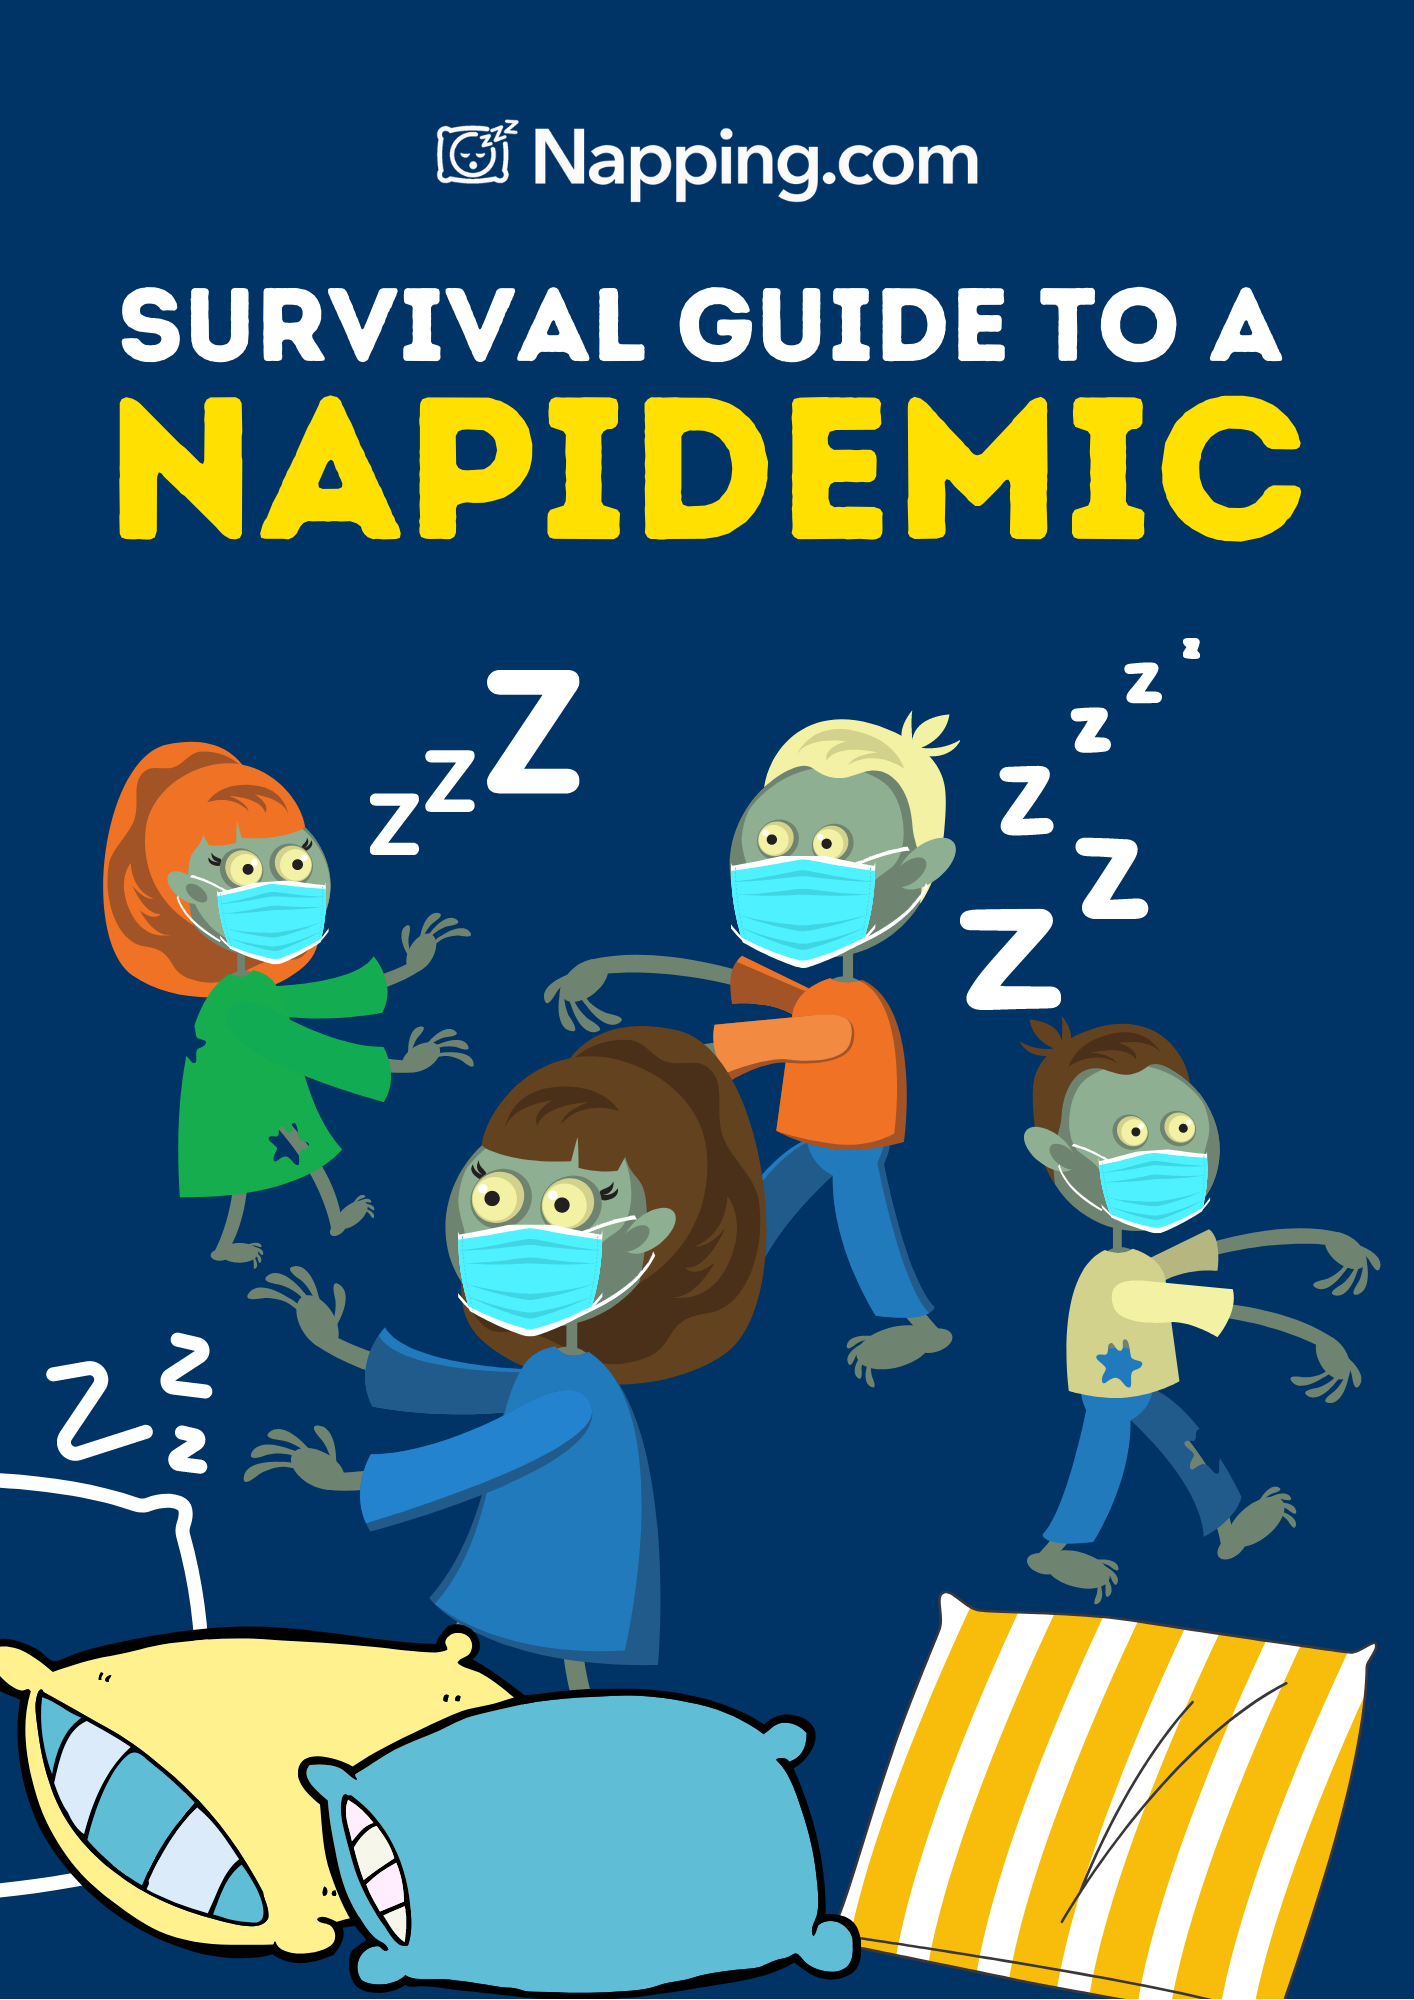 Napping.com Releases 'Survival Guide to a Napidemic' to Provide Tips on Napping Properly